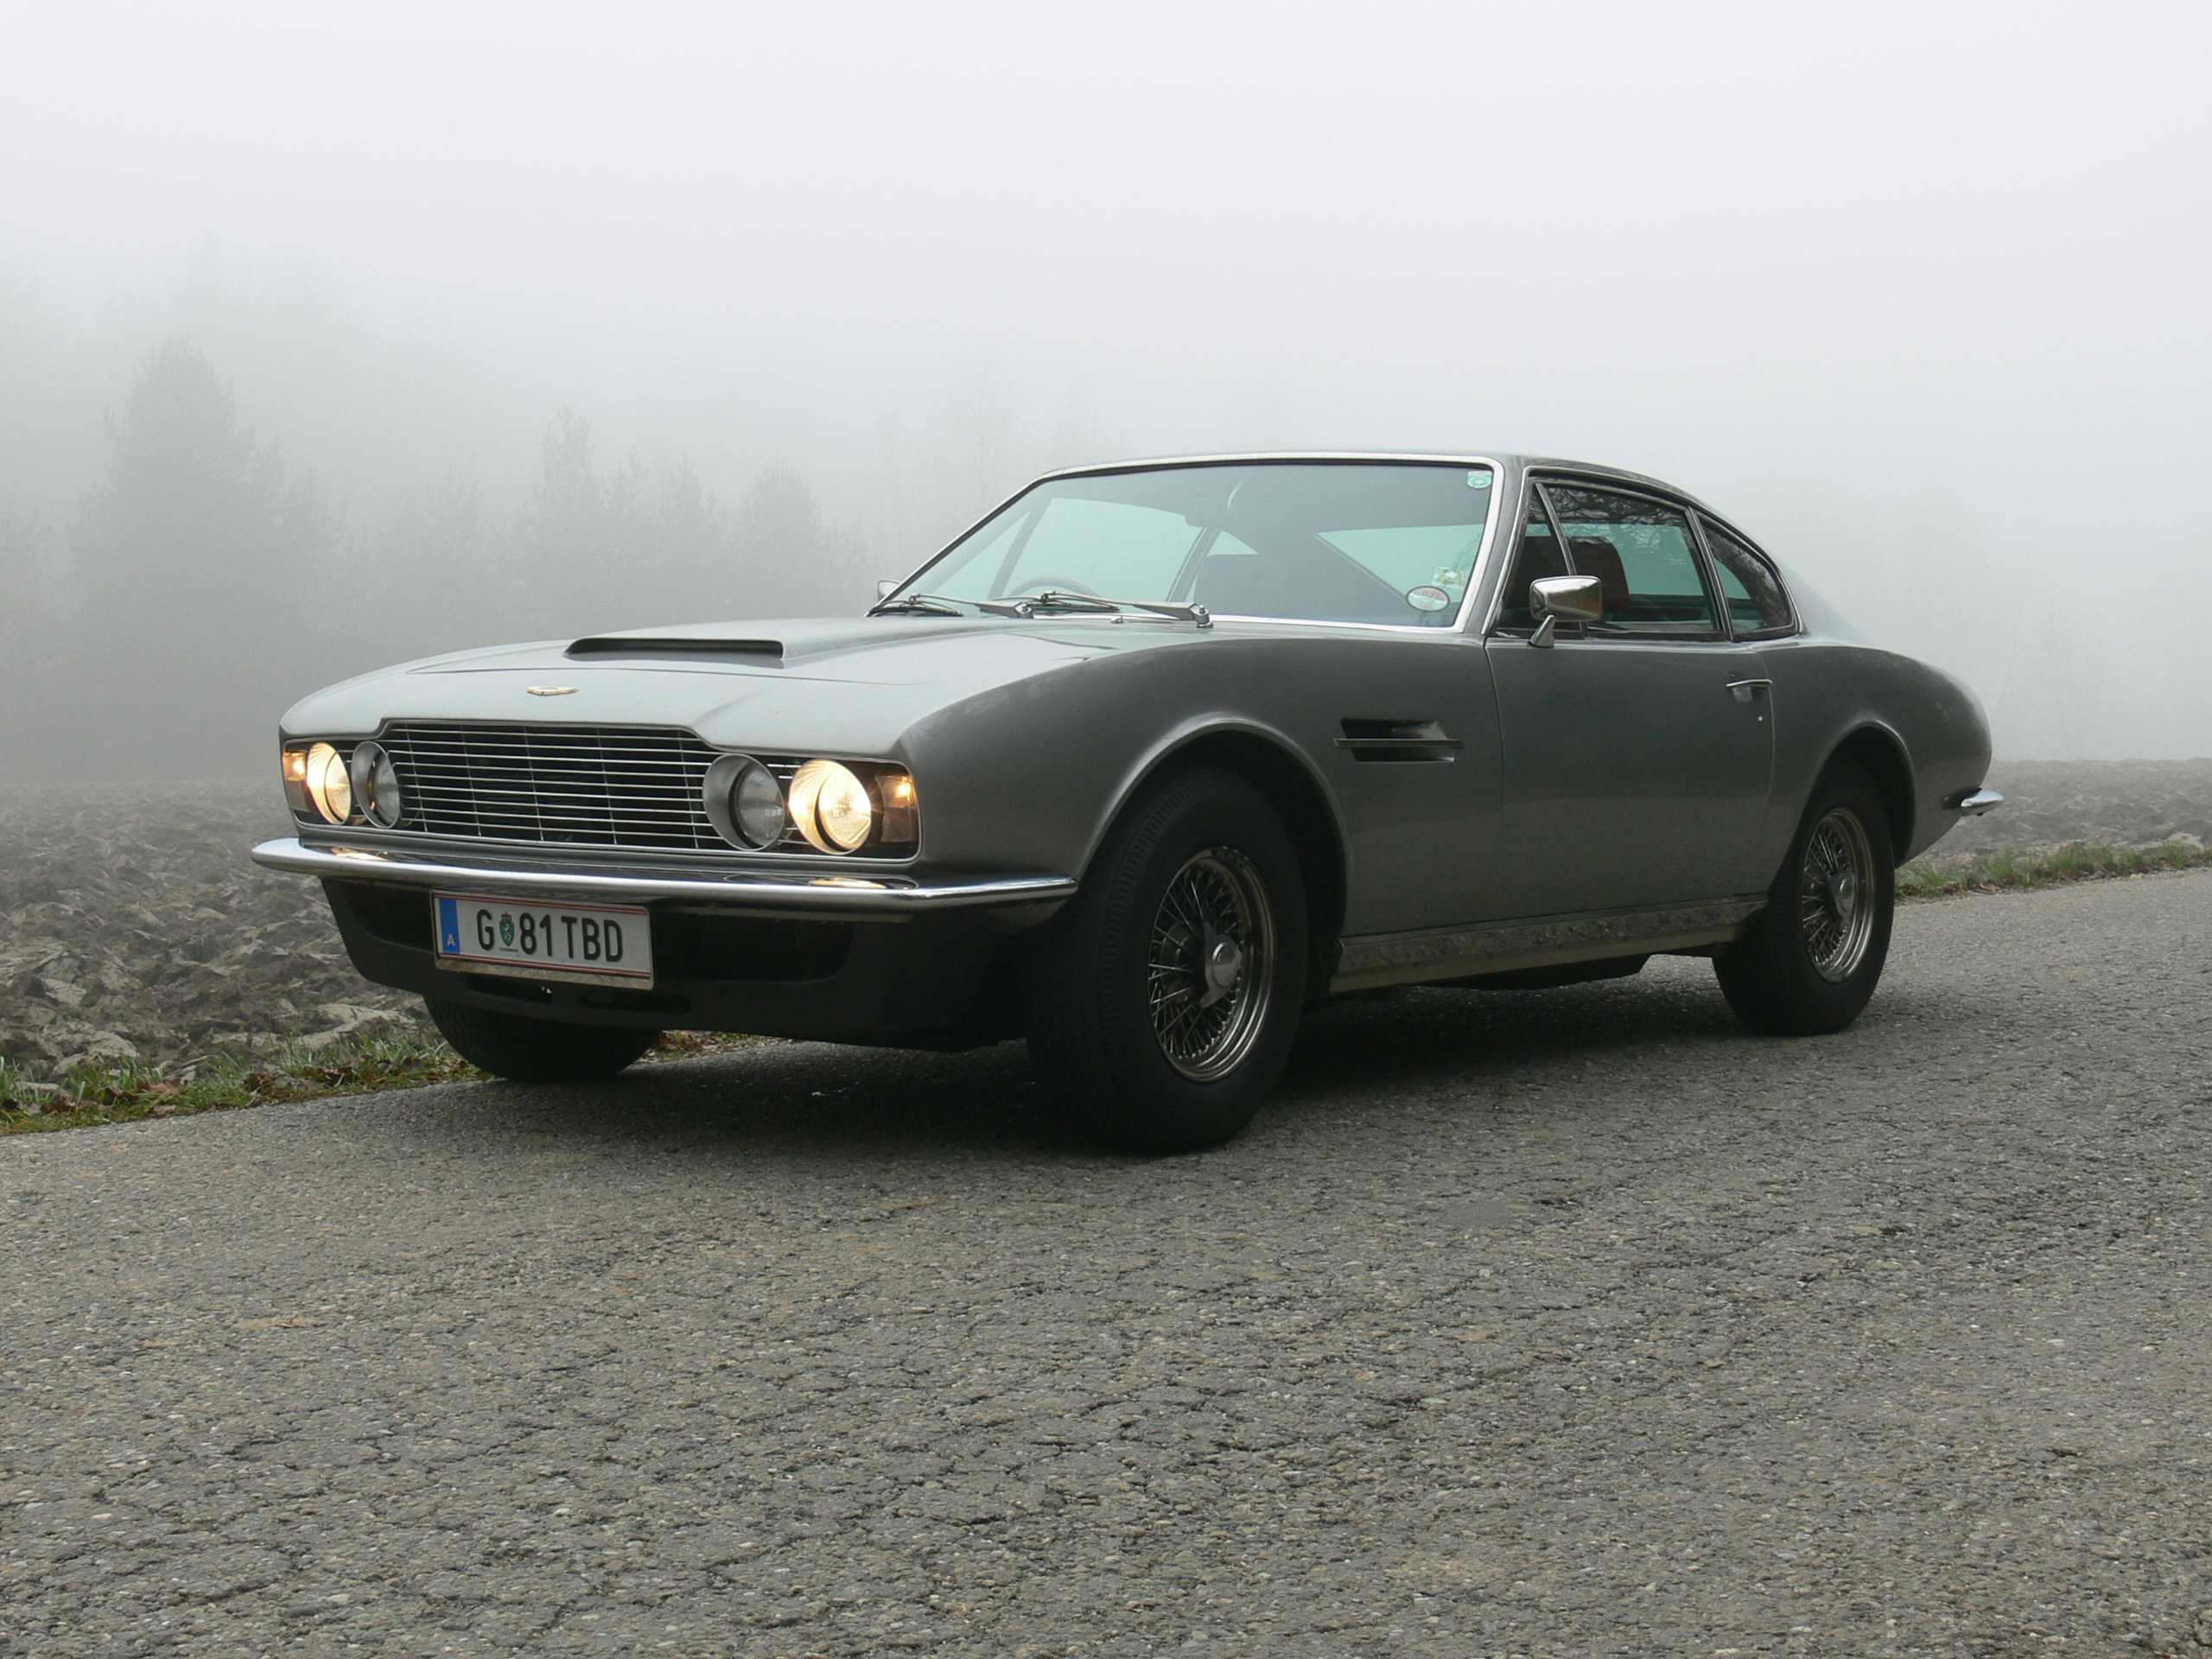 1970 Aston Martin Dbs Classic Cars Drive Away 2day